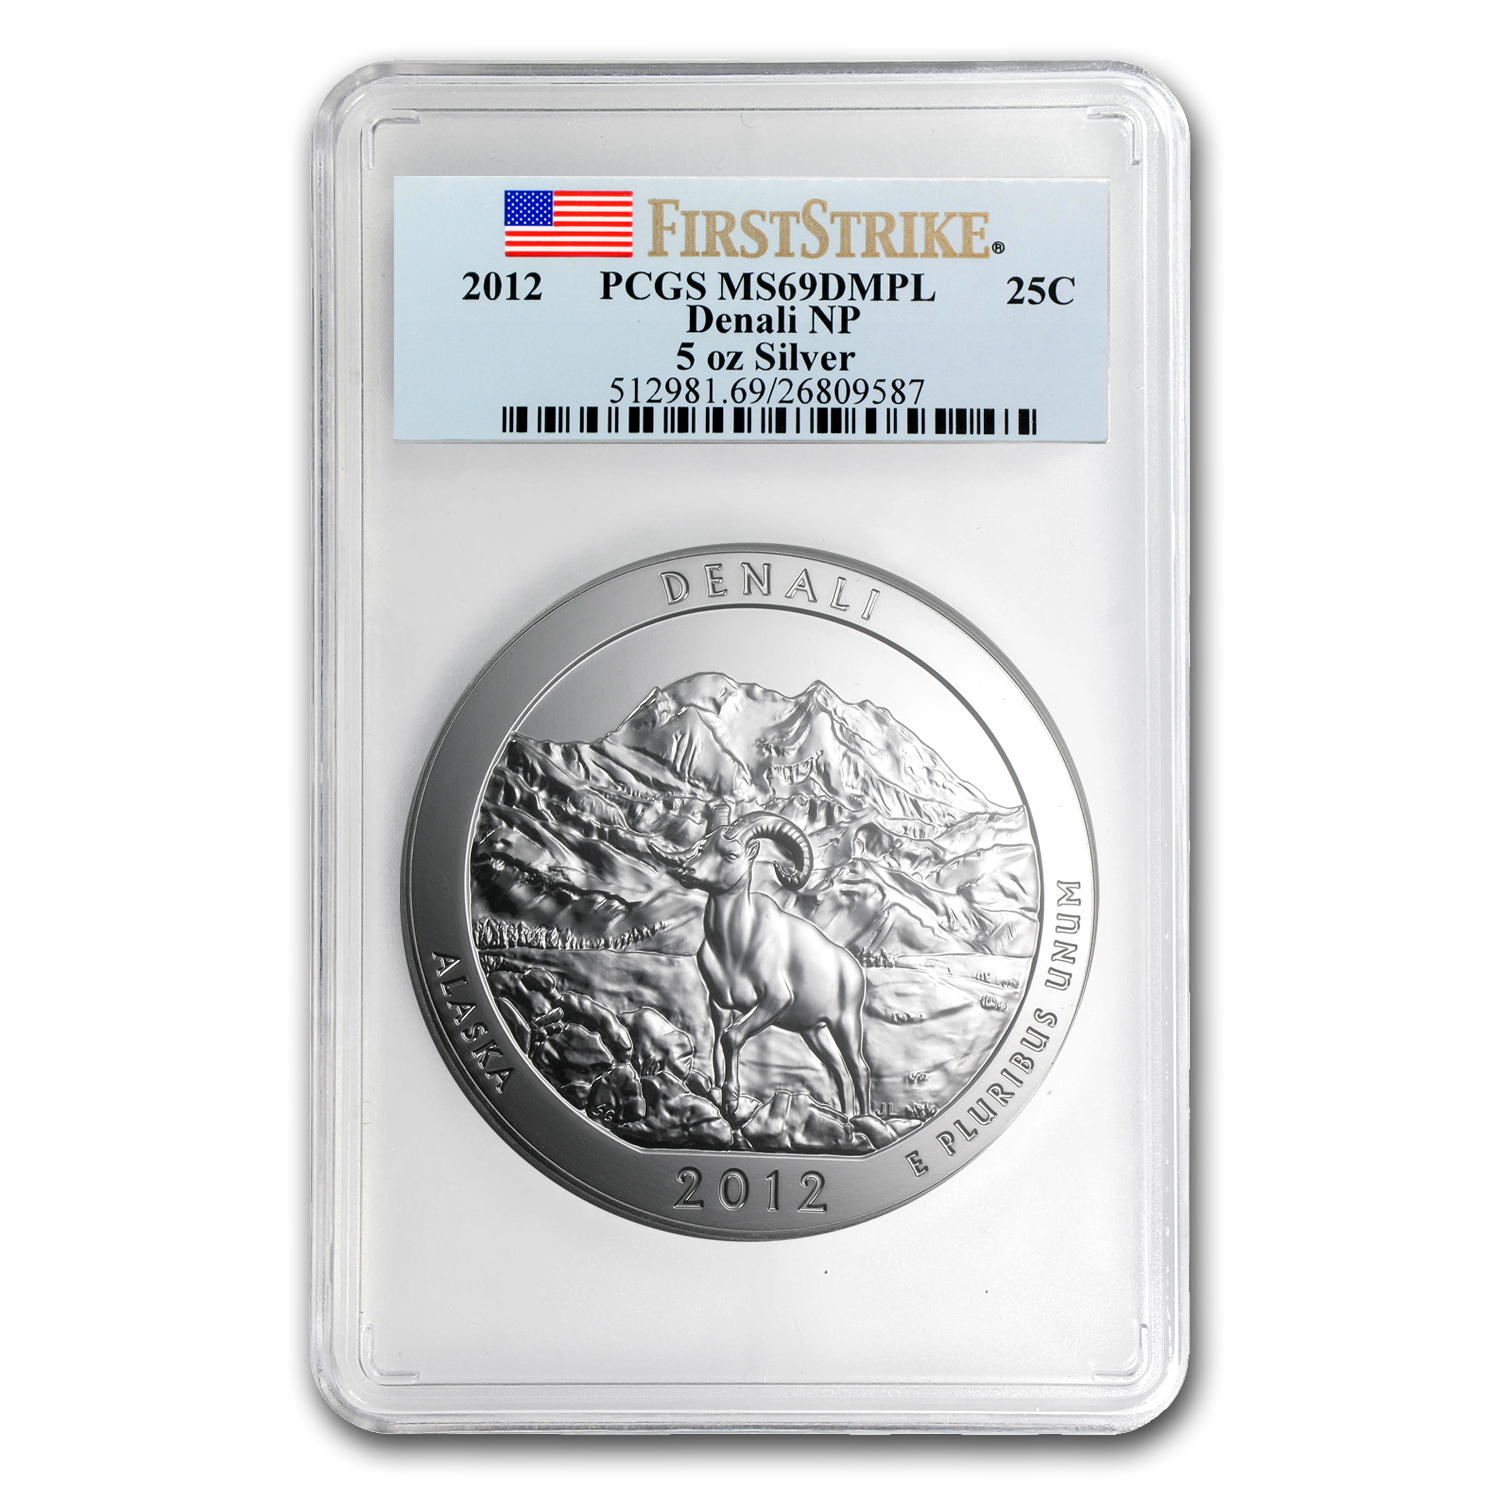 2012 5 oz Silver ATB Denali MS-69 DMPL PCGS (First Strike)